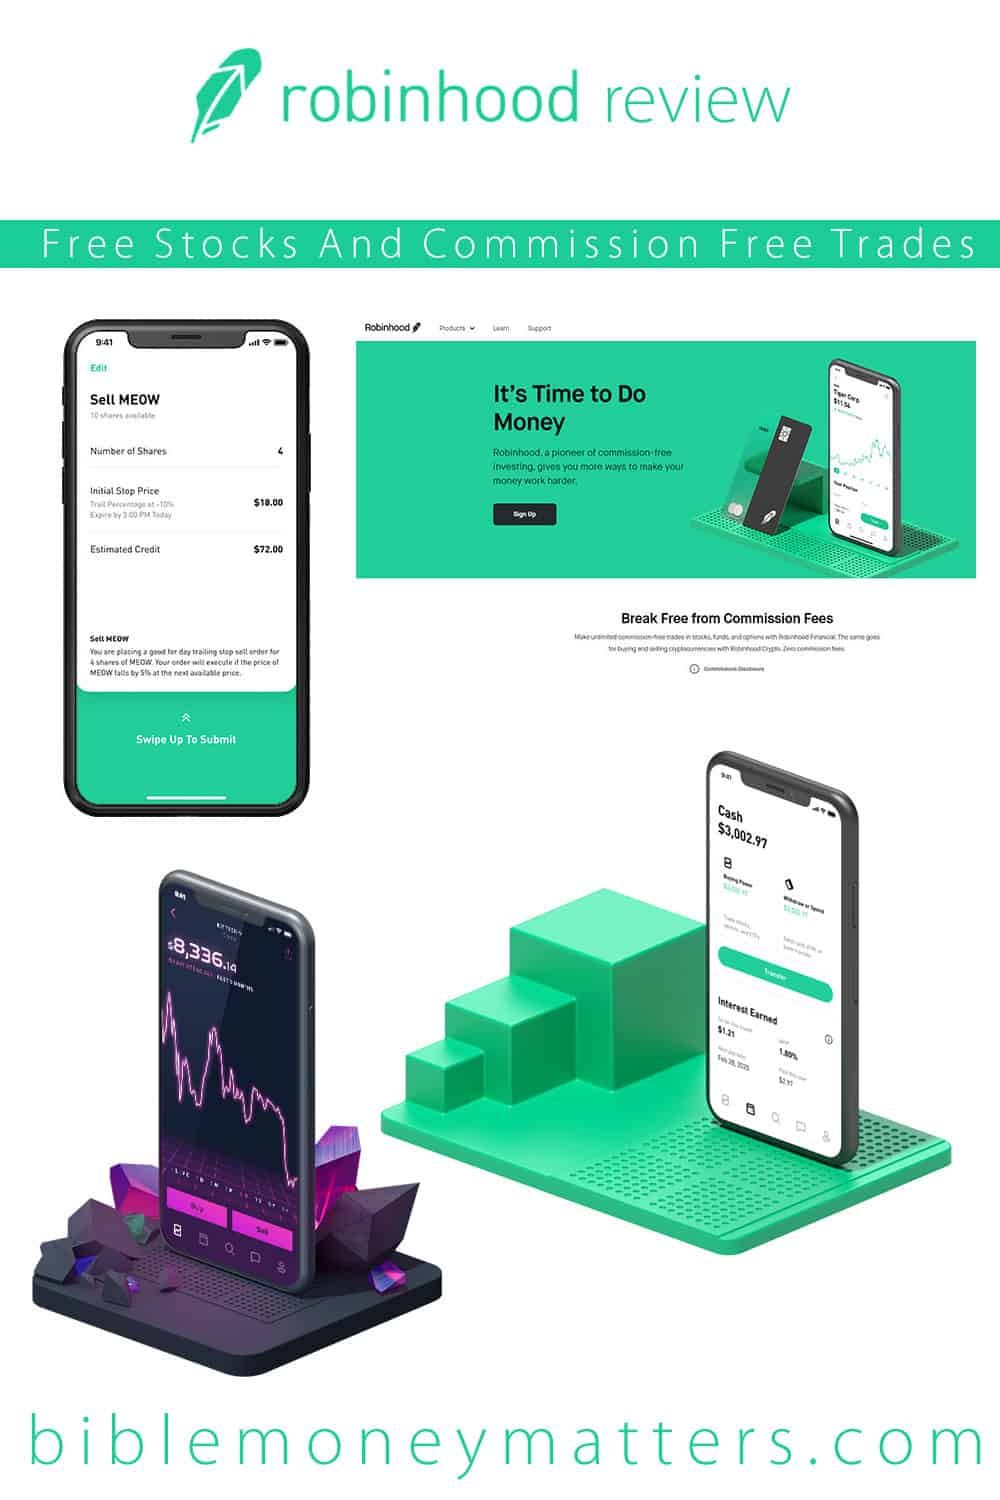 Price Used Robinhood